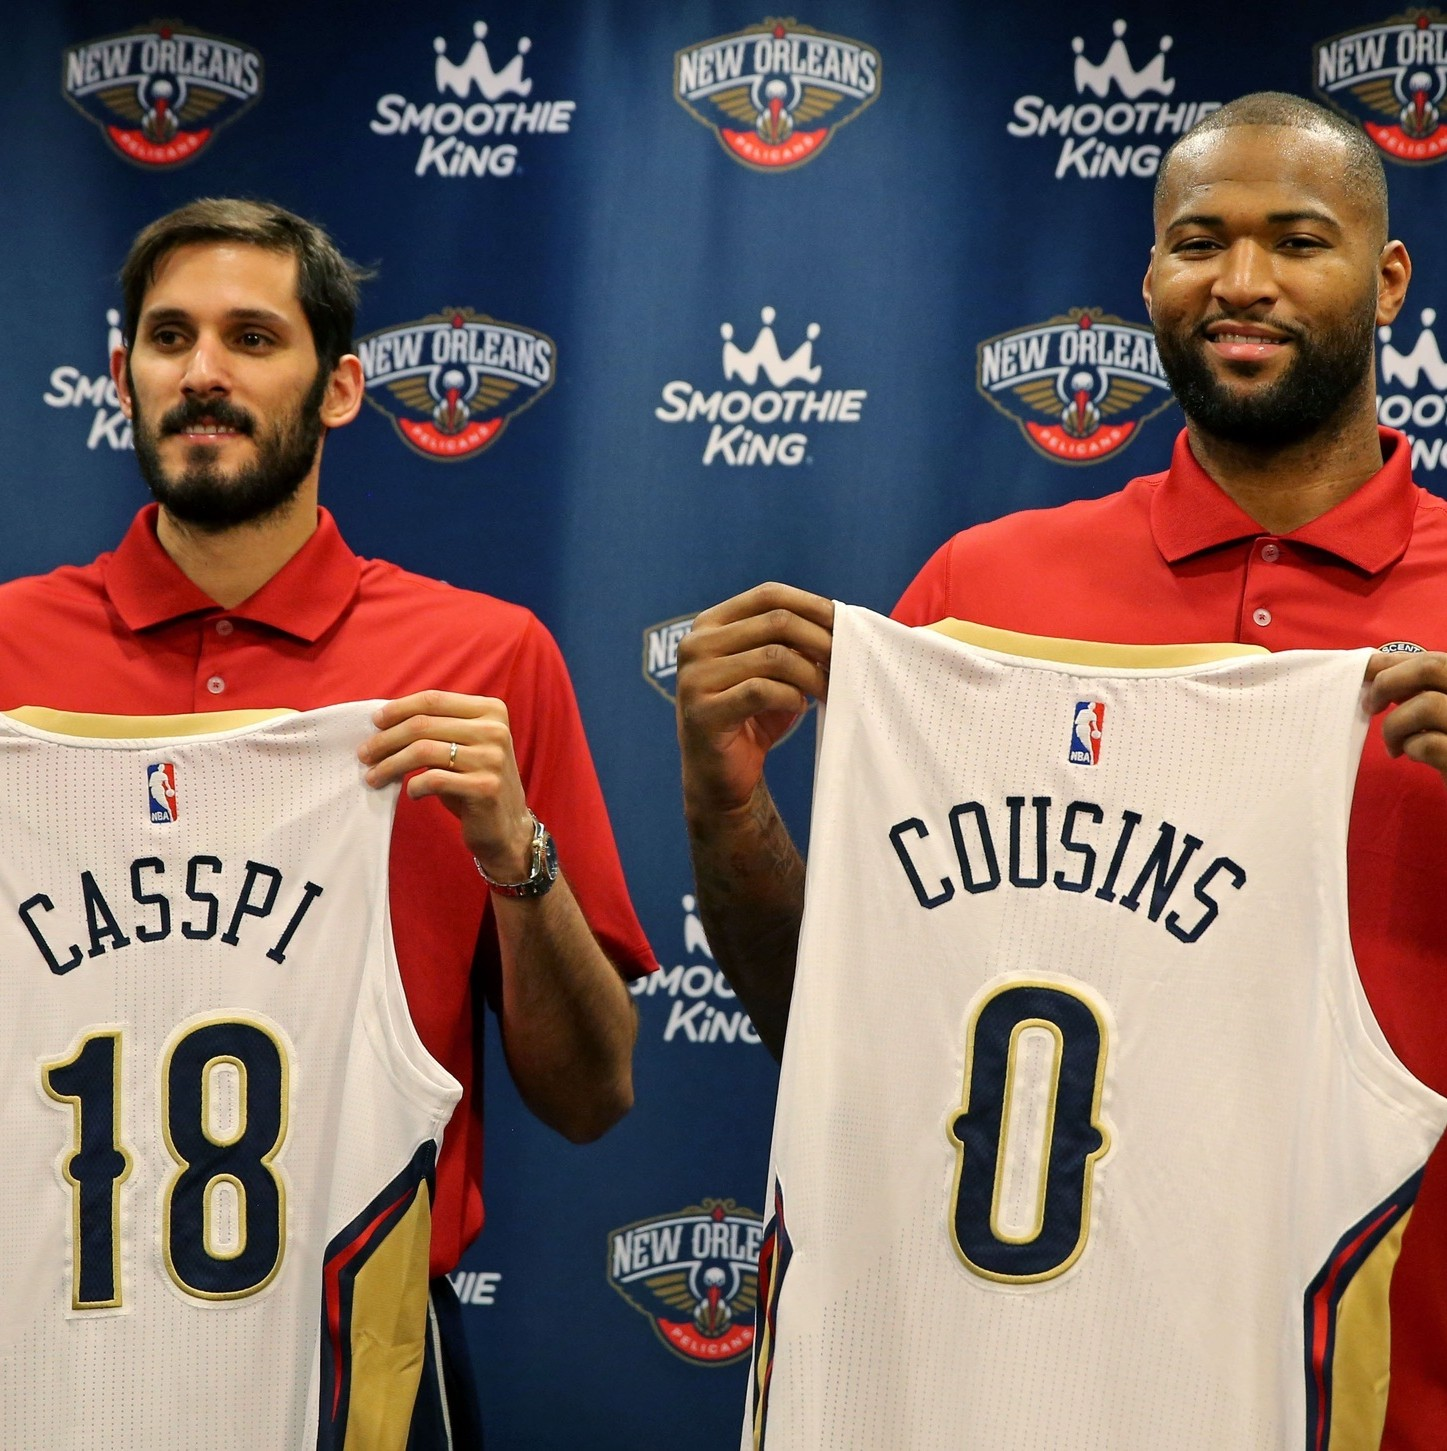 Boogie-and-nerlens-are-making-moves-the-nba-trade-deadline-in-review-1487885485.jpg?crop=0.672514619883041xw:1xh;0